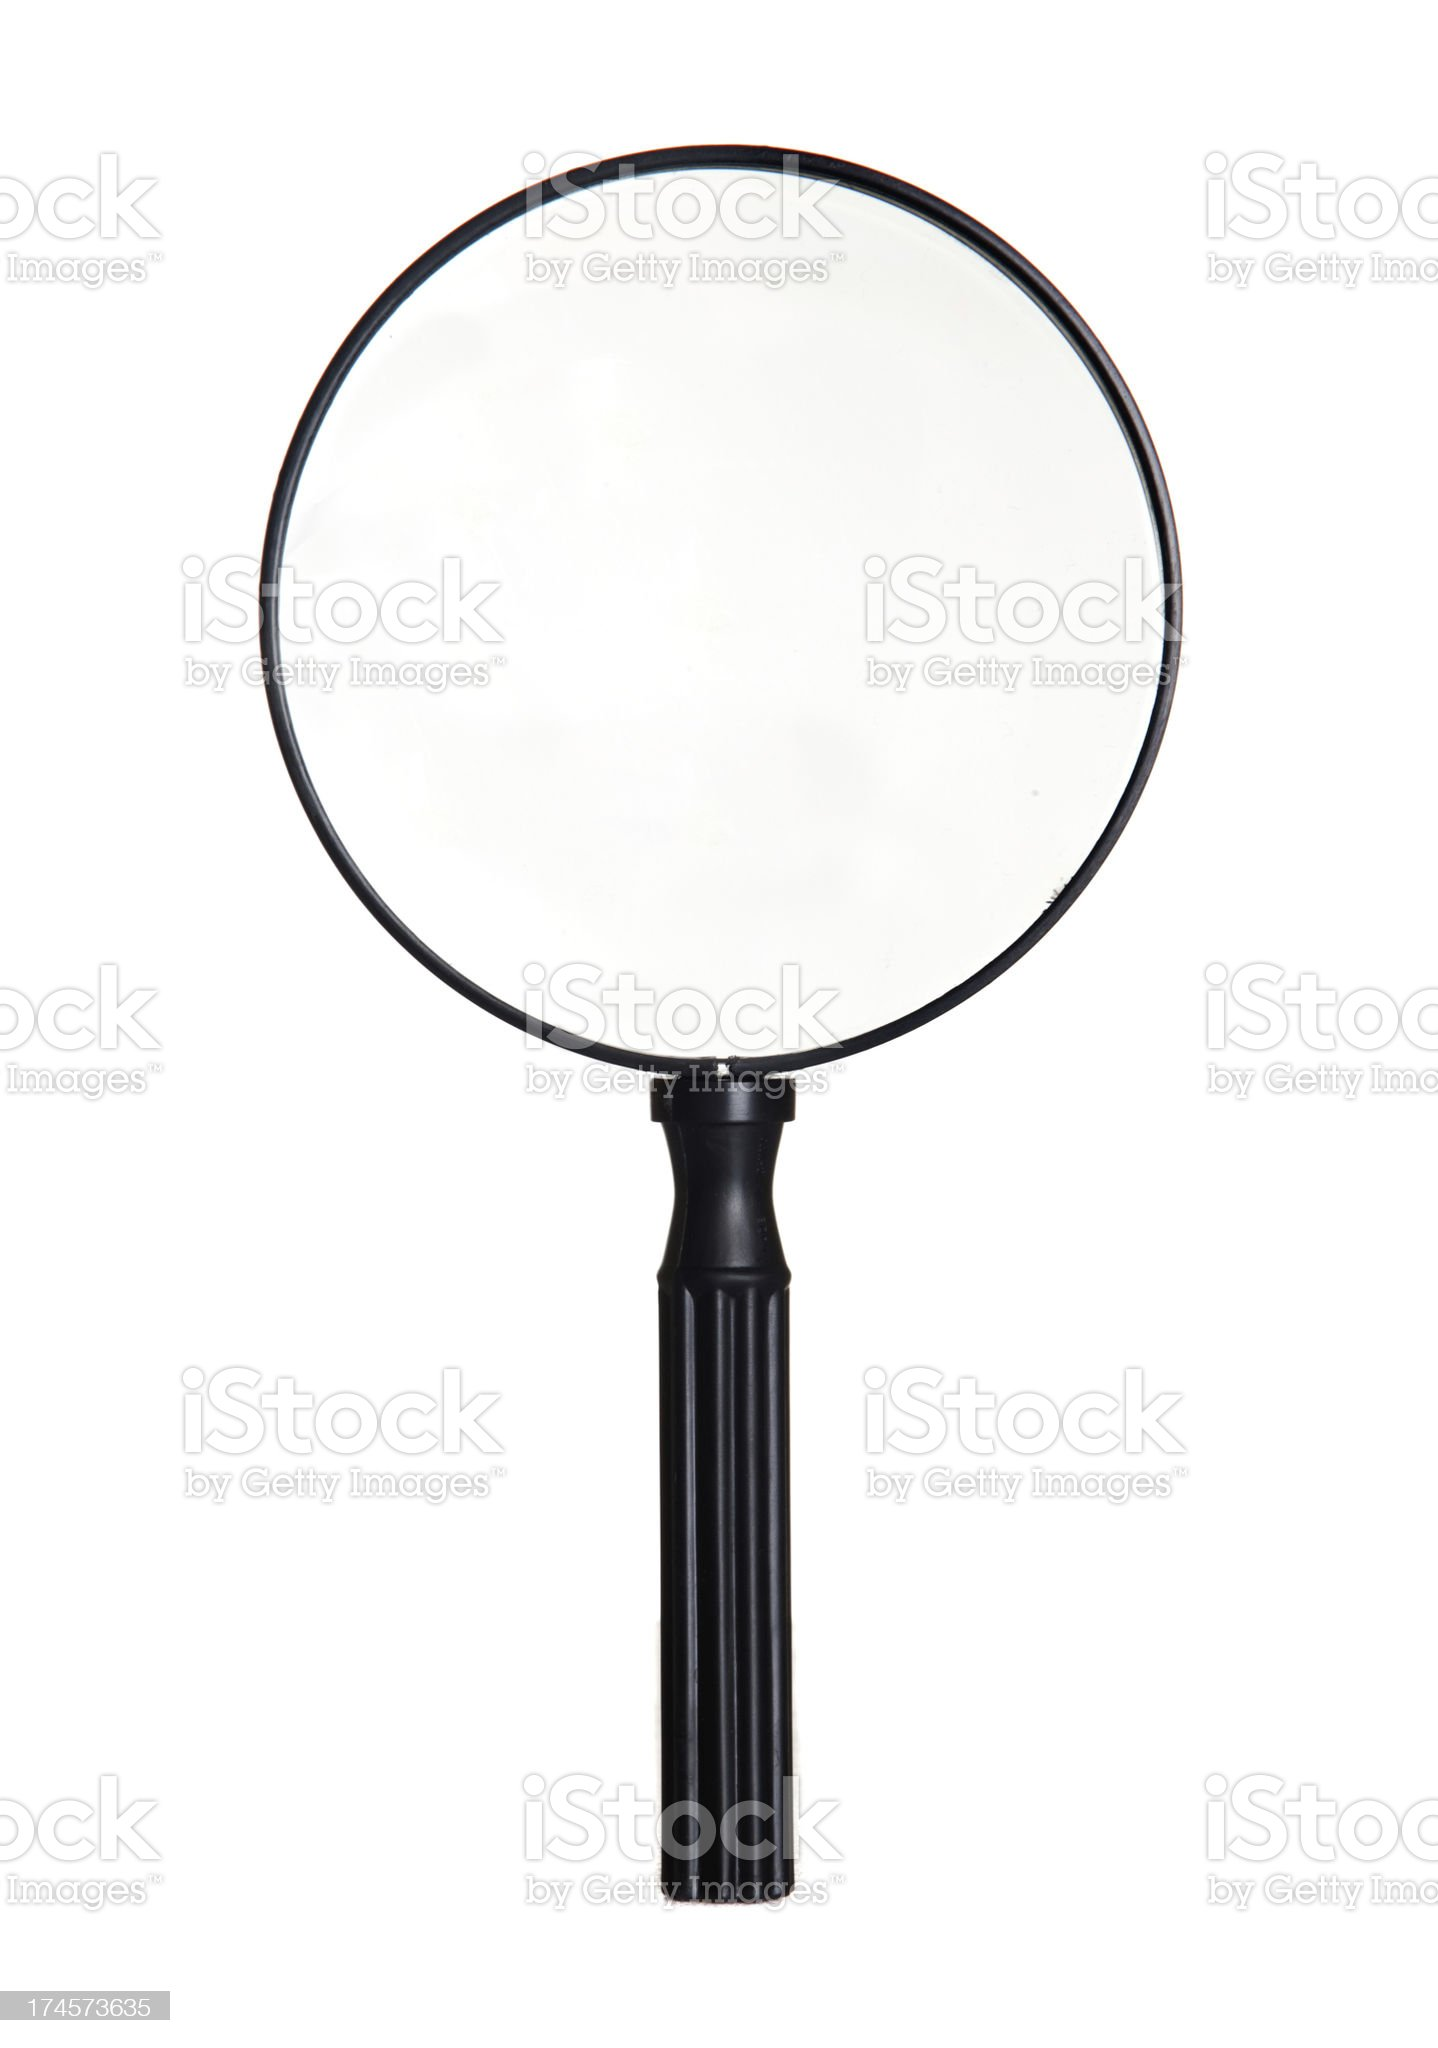 Big magnifier royalty-free stock photo